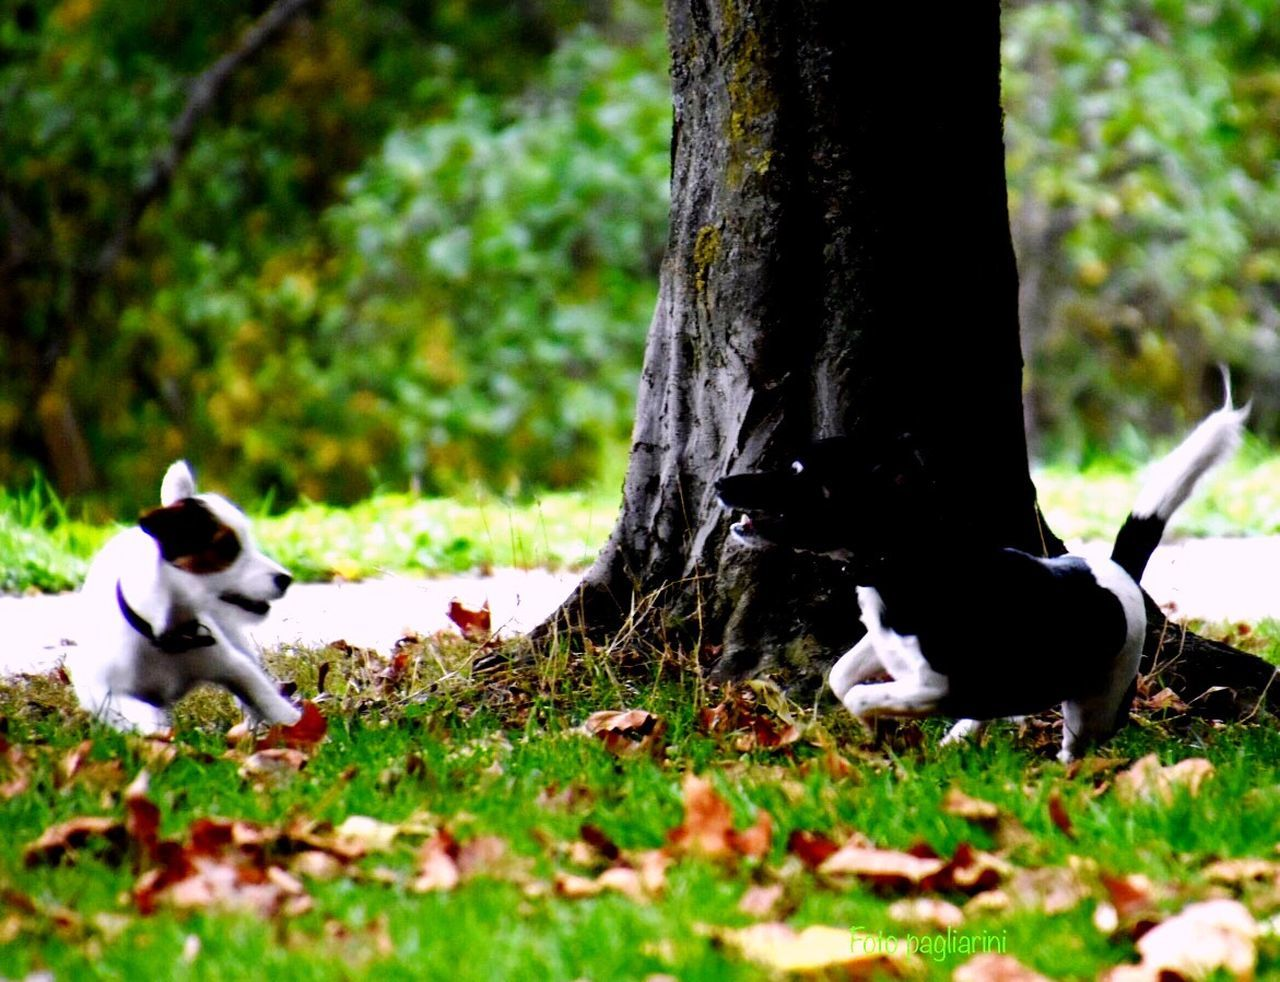 Animal Themes Domestic Animals Dog Love Nature Autumn Impressions🍁🍂🎃 The Autumn Is The Spring Of Winter One Animal EyeEm Best Shots Showcase: October Eye4photography  Nikonphotography EyeEm Best Shots - Nature The Autumn Sky☁🍃🍂🍁 EyeEm Nature Lover EyeEm Good Situation To Photograph 📸 EyeEm Gallery Eye Dog No People Nature Photography